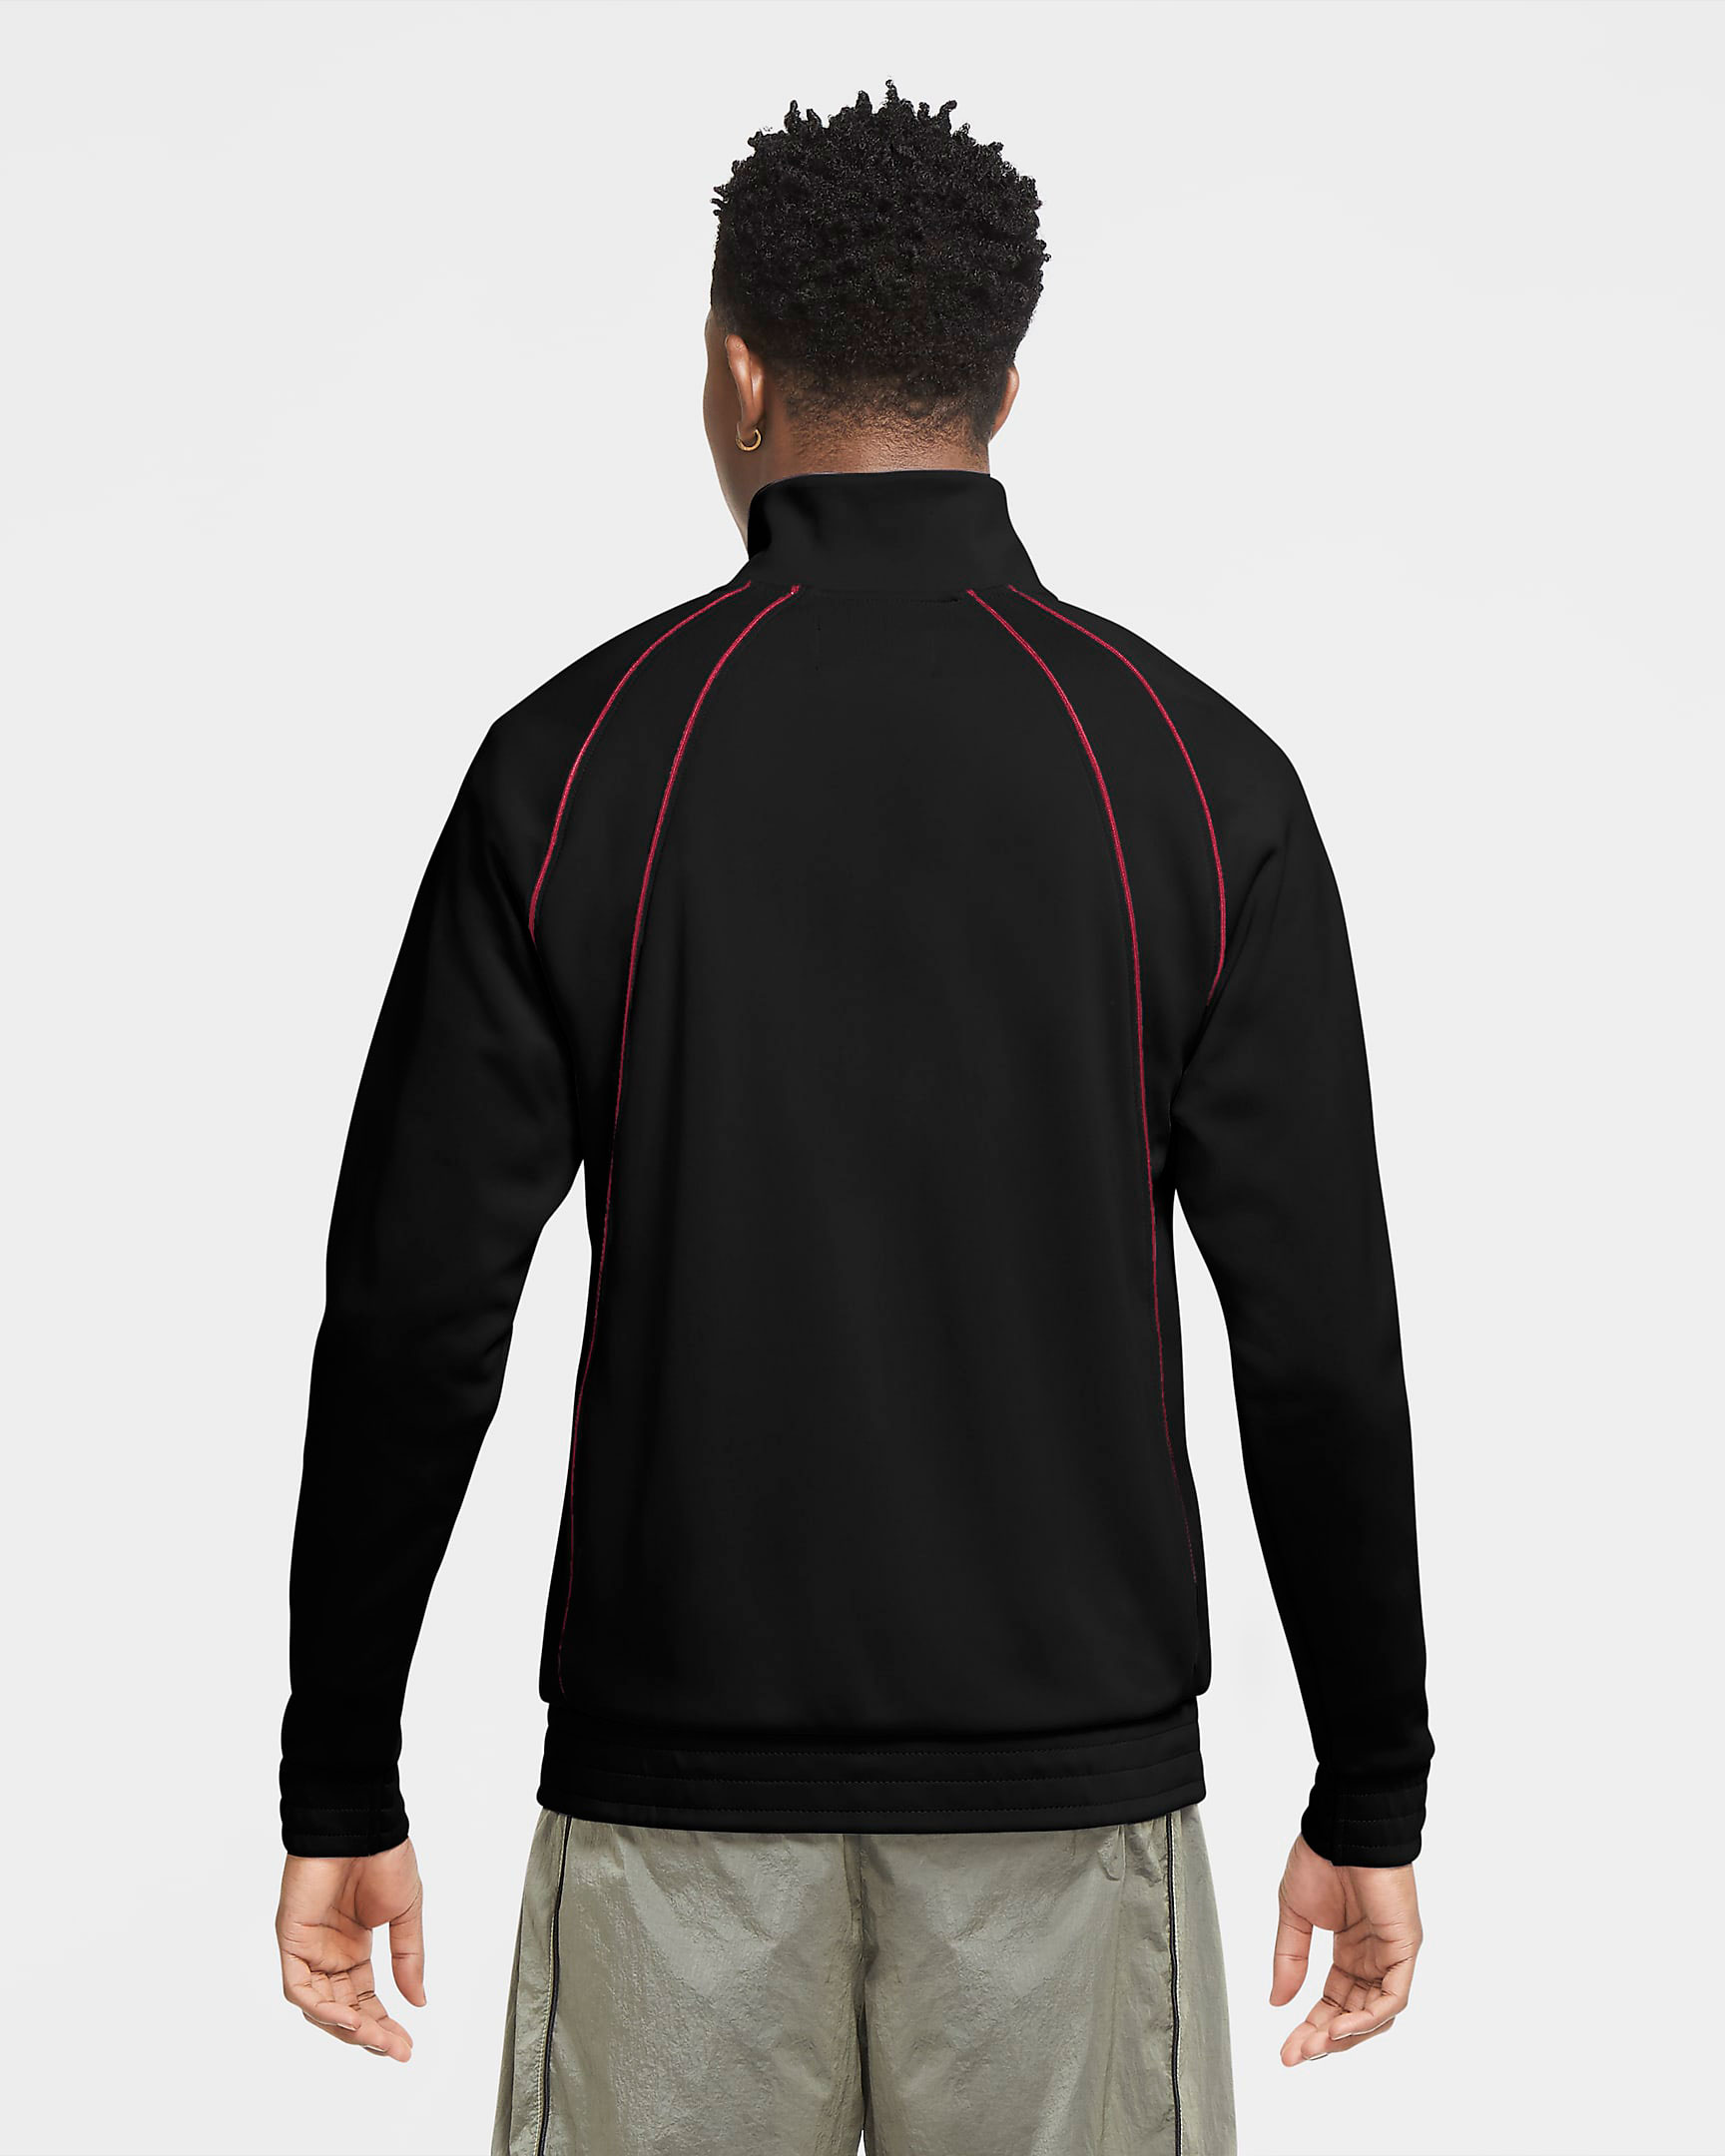 air-jordan-35-warrior-track-jacket-match-2